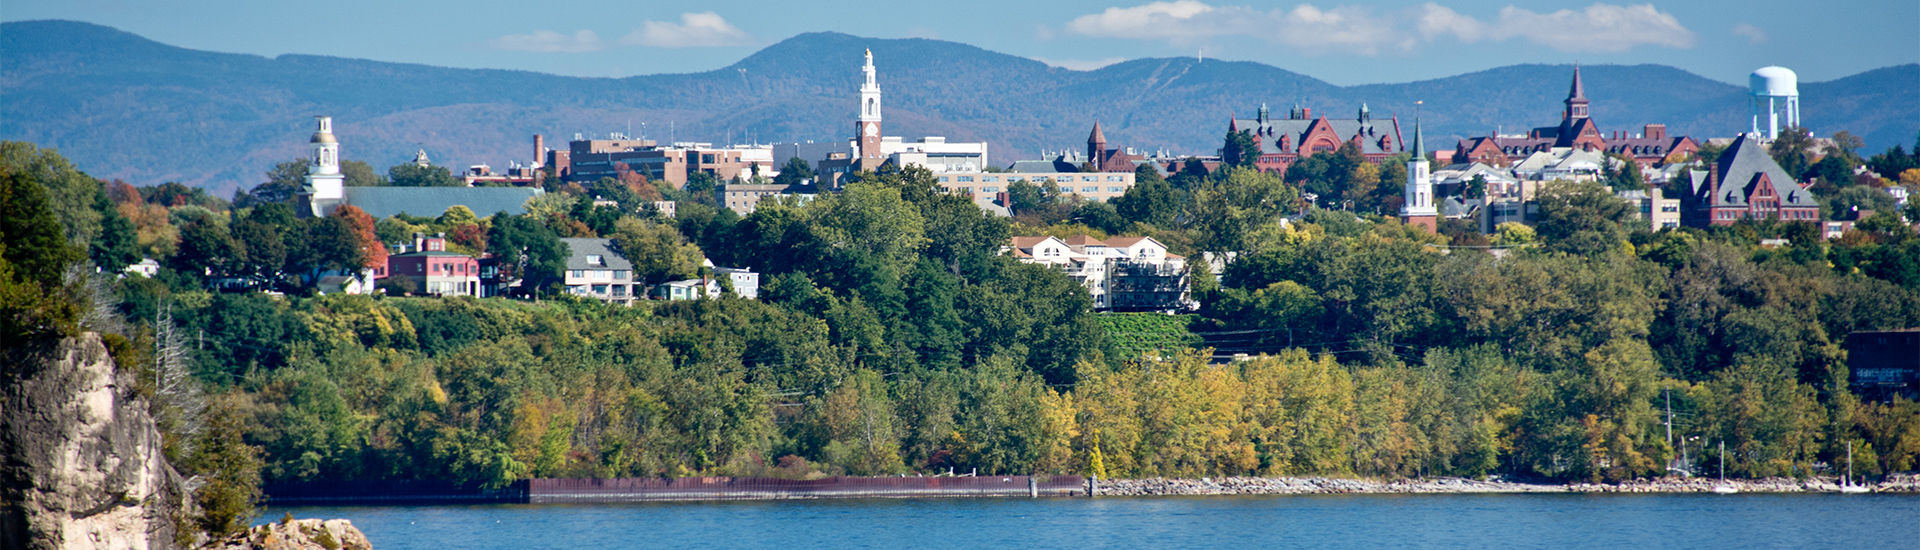 Burlington, Vermont on the shores of Lake Chamaplin